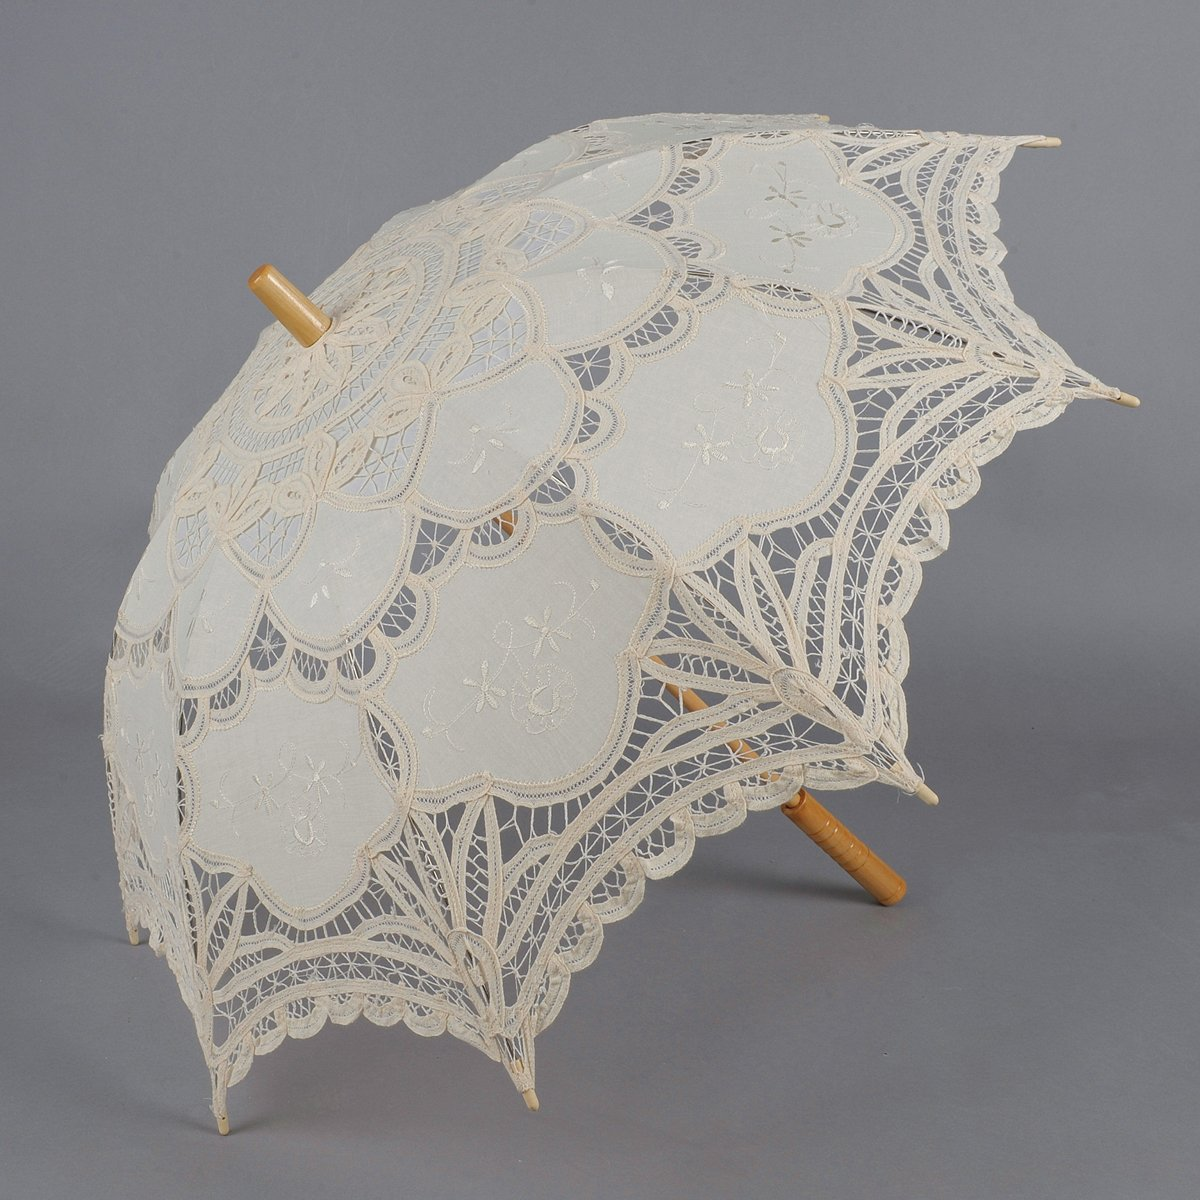 Artwedding Scallop Edge Embroidery Pure Cotton Lace Wedding Umbrella in Beige Onesize by Artwedding (Image #3)